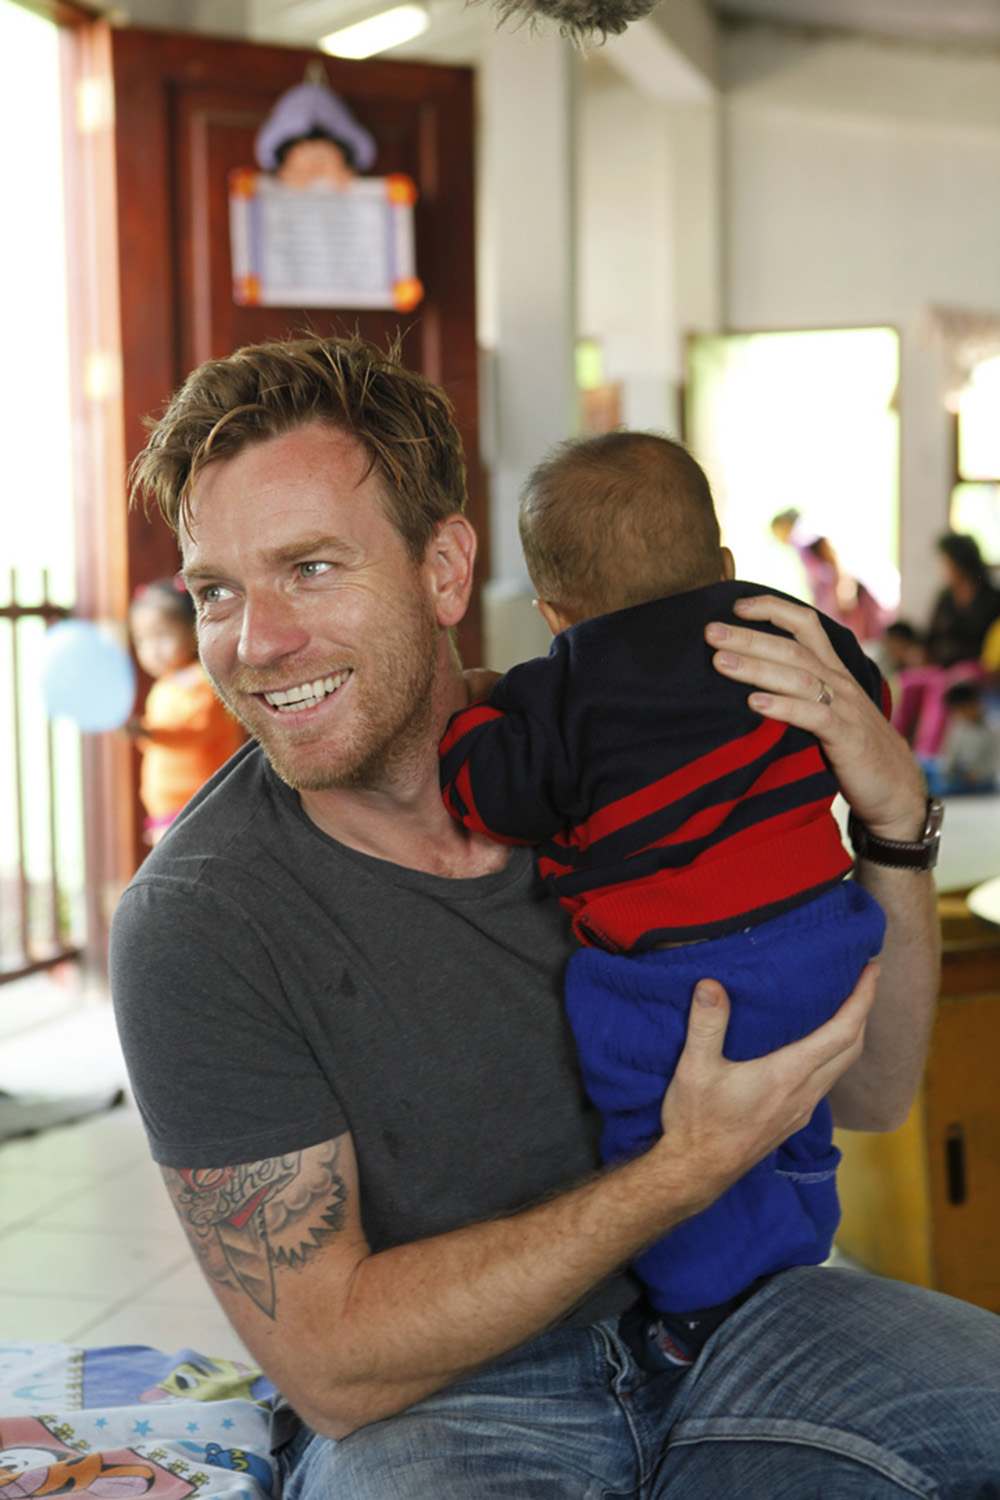 UNICEF Goodwill Ambassador Ewan McGregor visits community projects supported by UNICEF, in the neighbourhood of Ventanilla, Peru